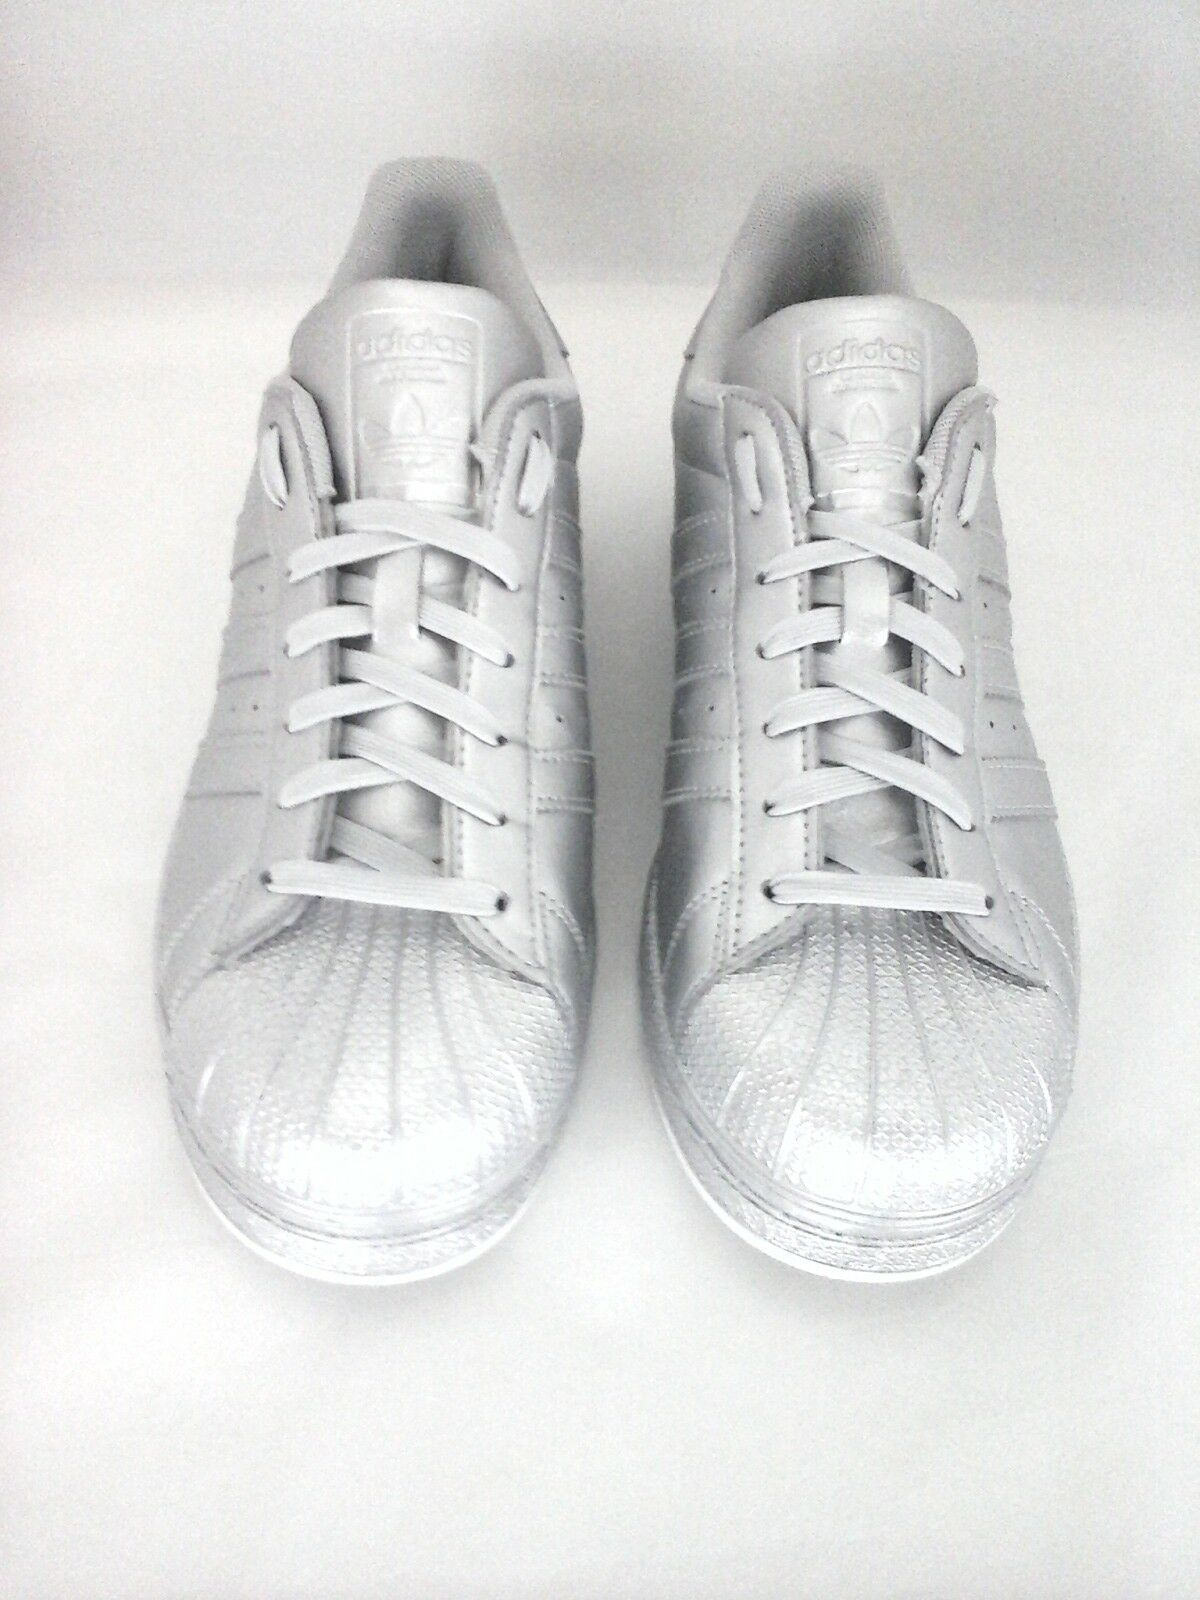 ADIDAS ORIGINALS SUPERSTAR Clamshell Metallic RARE Schuhes Damenschuhe SILVER Metallic Clamshell BB8139 ba8b89